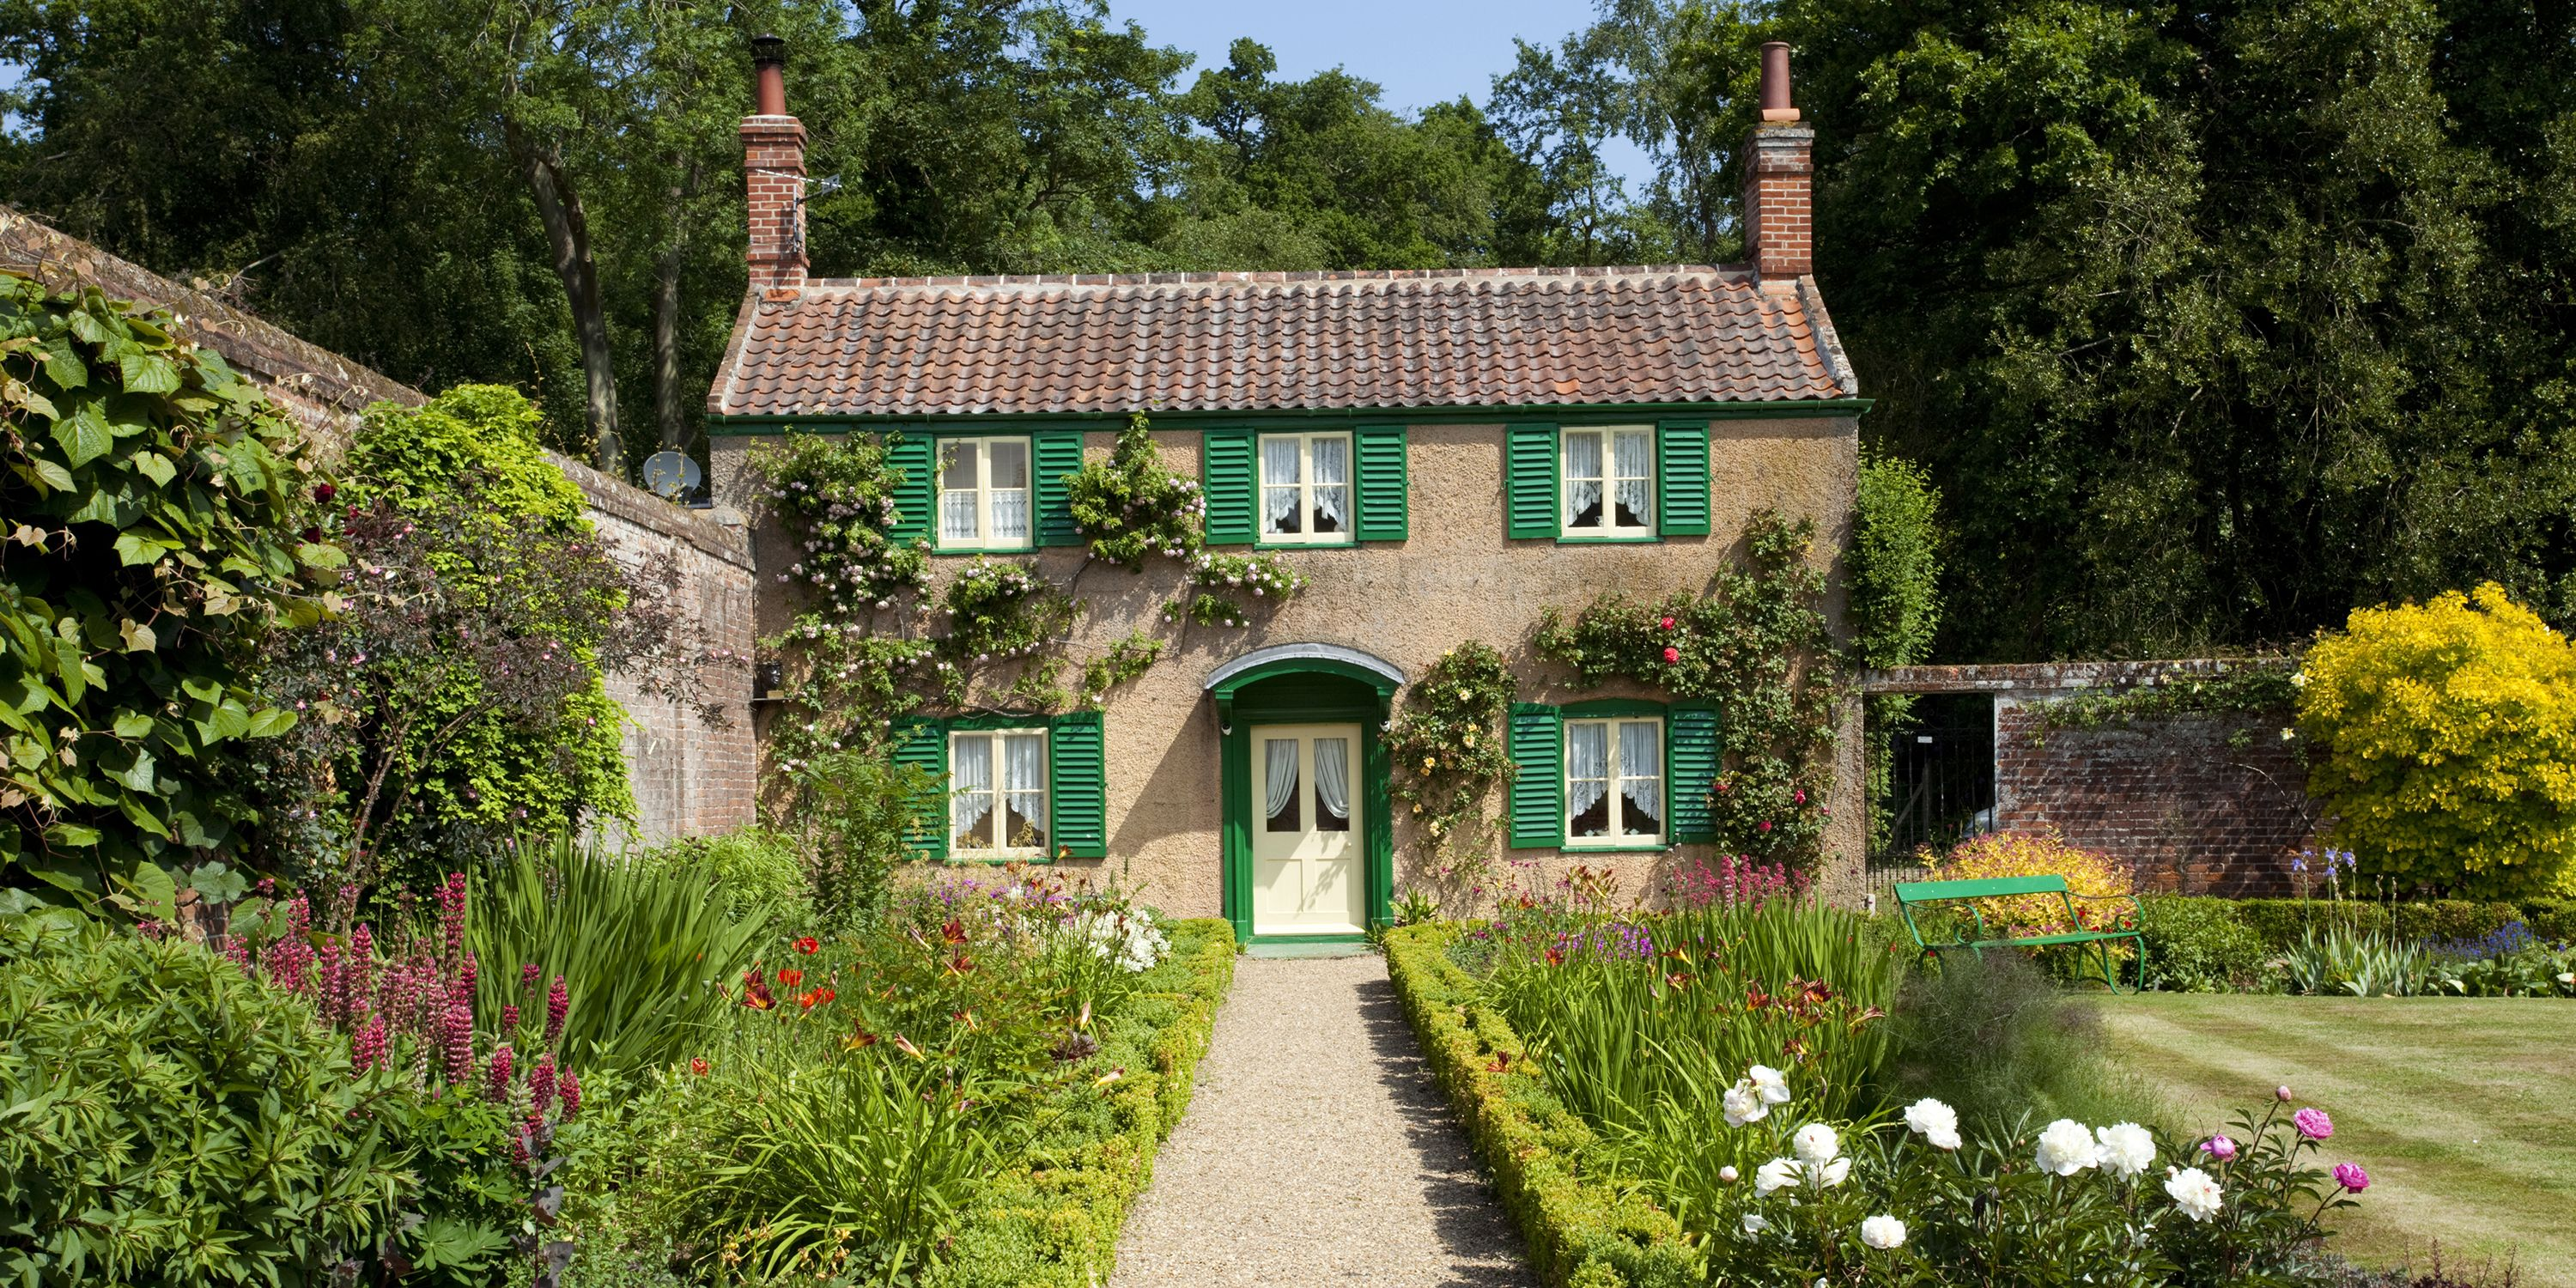 11 photos of english country cottages that make us want one right now